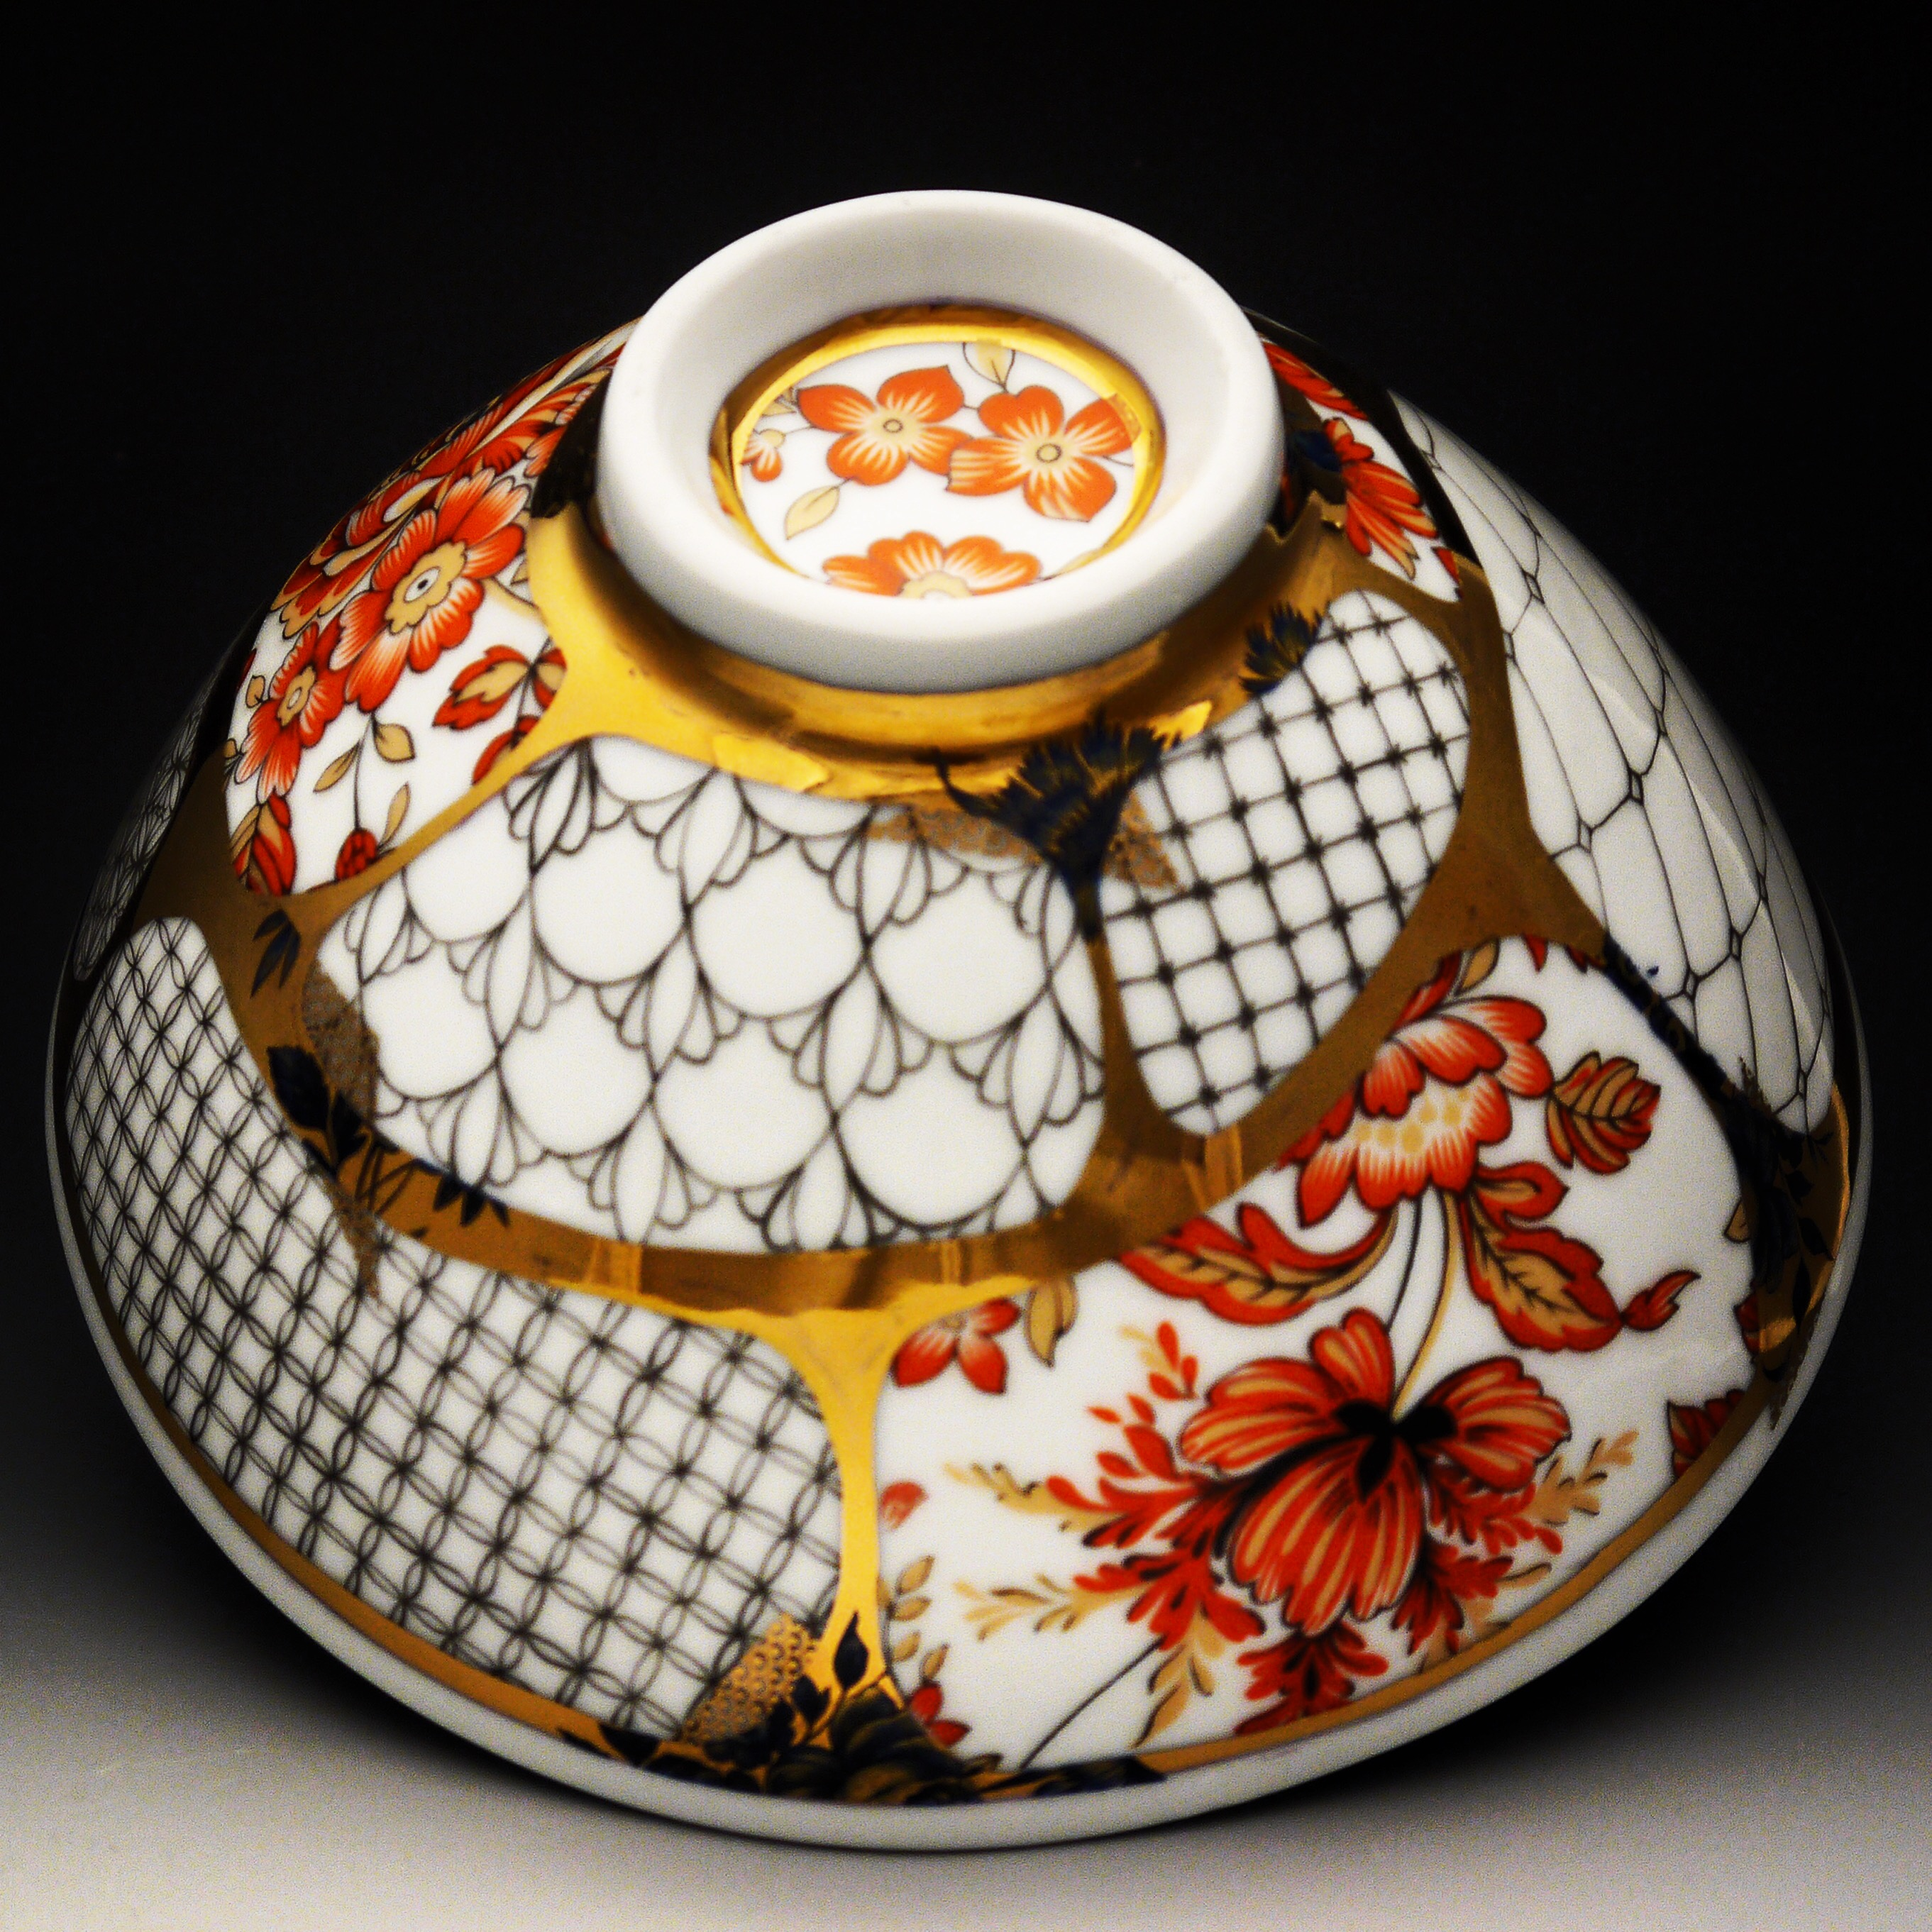 """Title: """"Japanese Noodle Bowl II"""" 